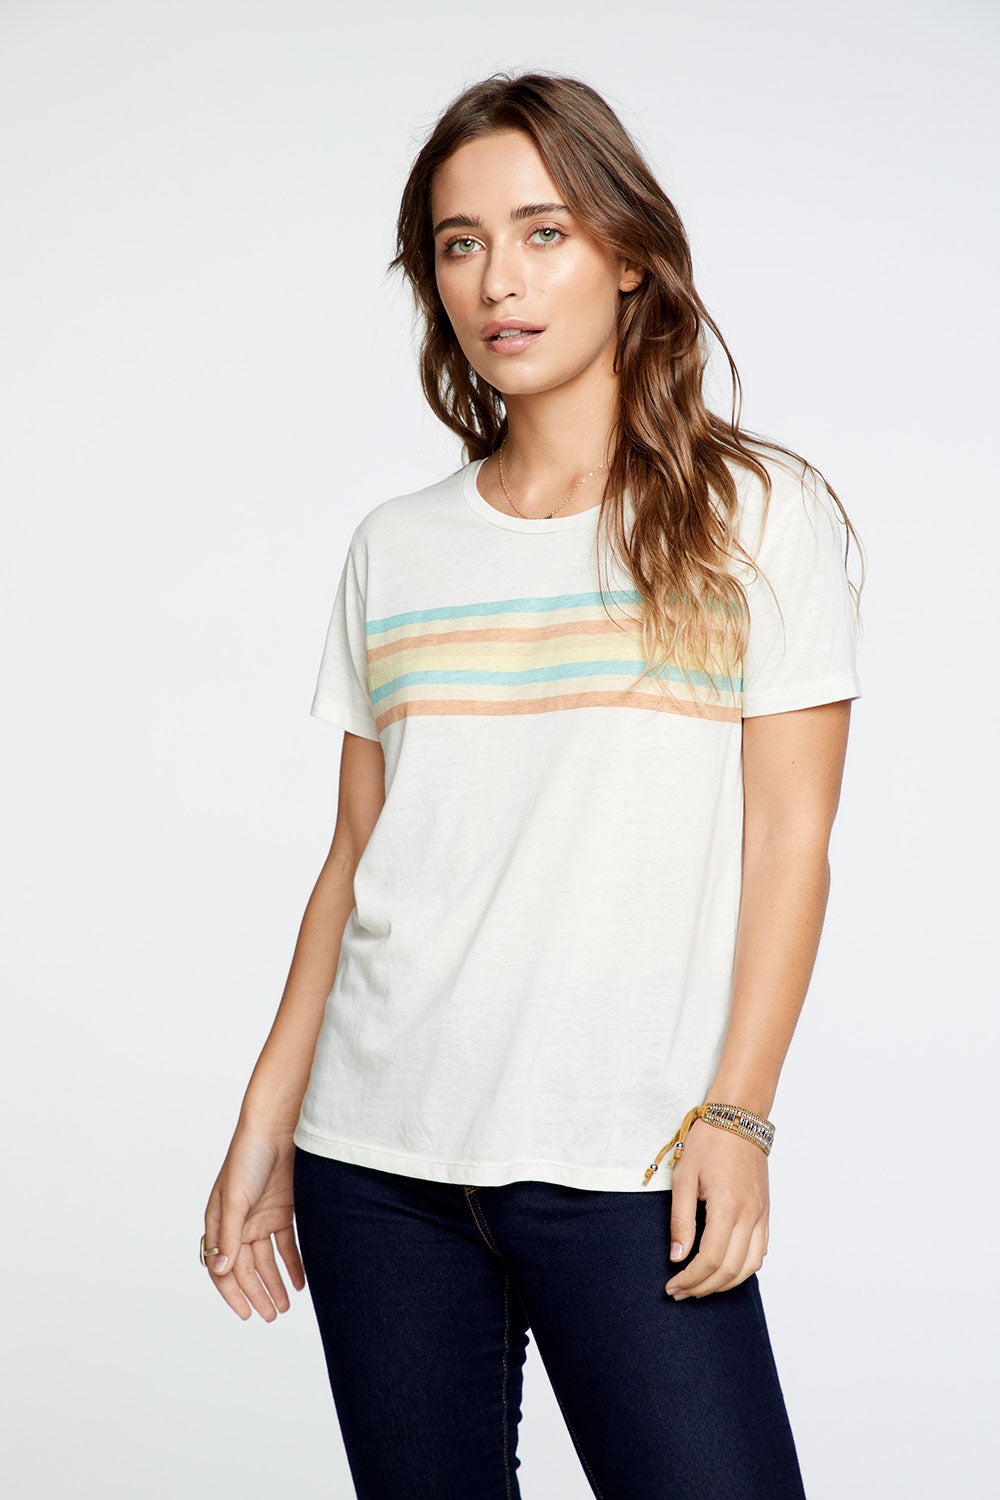 Pastel Rainbow Tee WOMENS chaserbrand4.myshopify.com